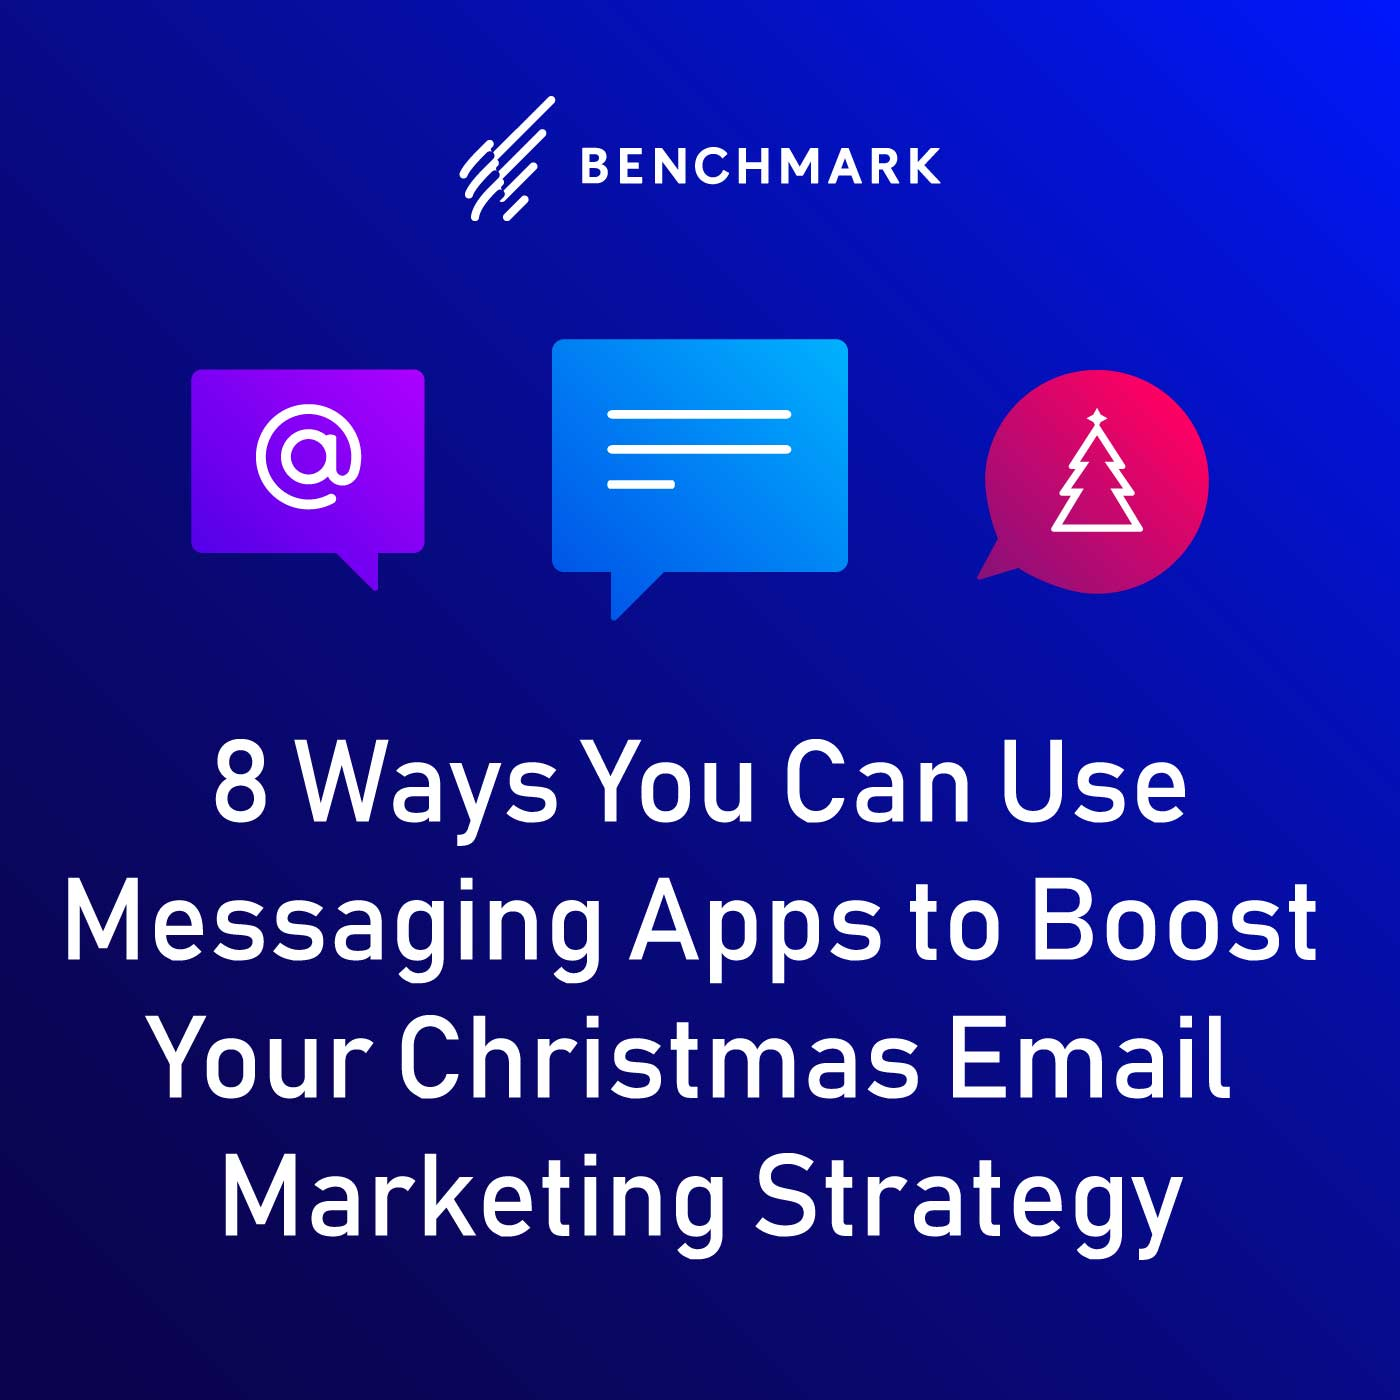 8 Ways You Can Use Messaging Apps to Boost Your Christmas Email Marketing Strategy